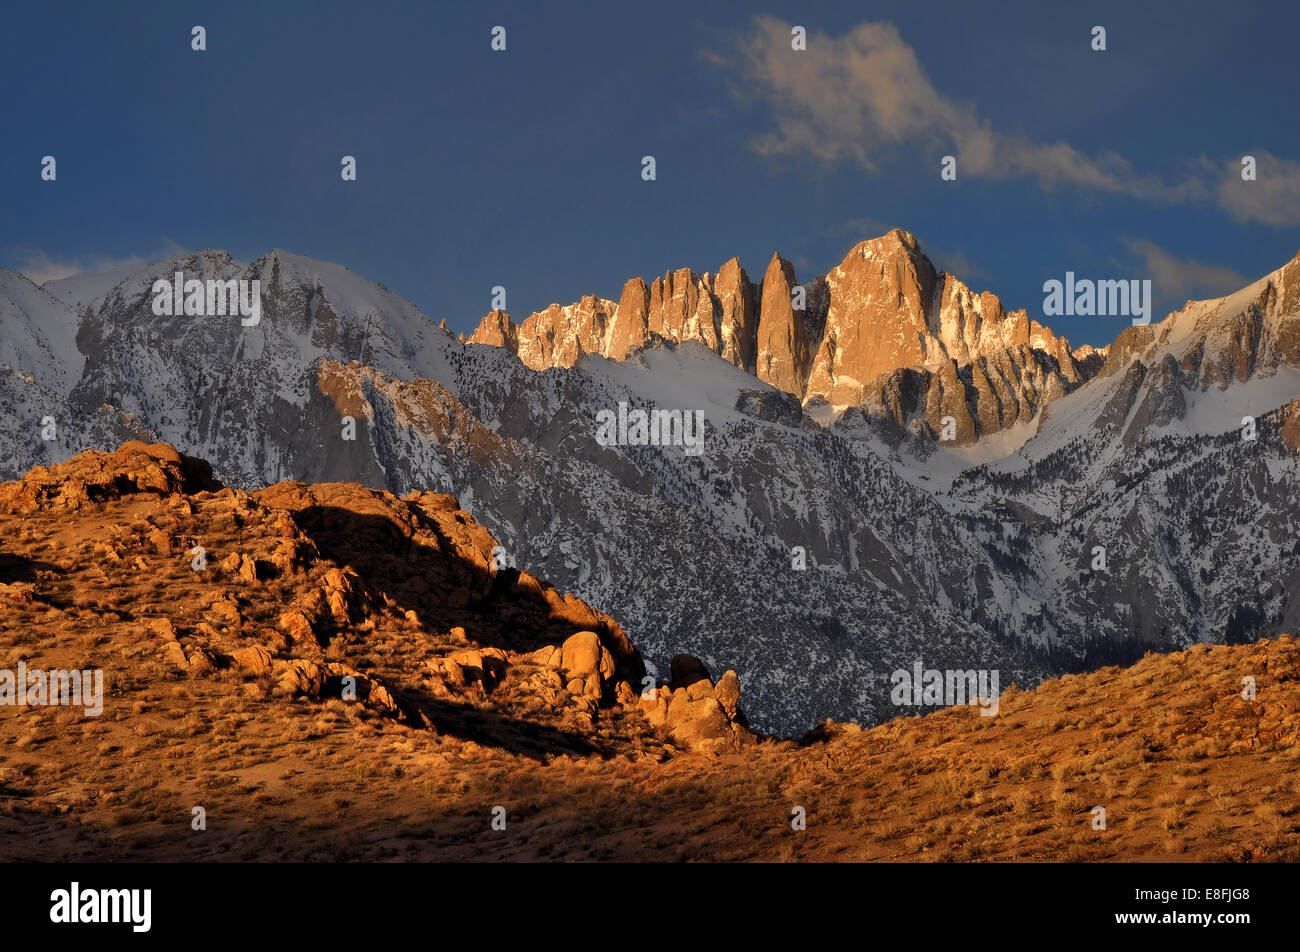 USA, California, Eastern Sierra Nevada, Mount Whitney and Alabama Hills - Stock Image